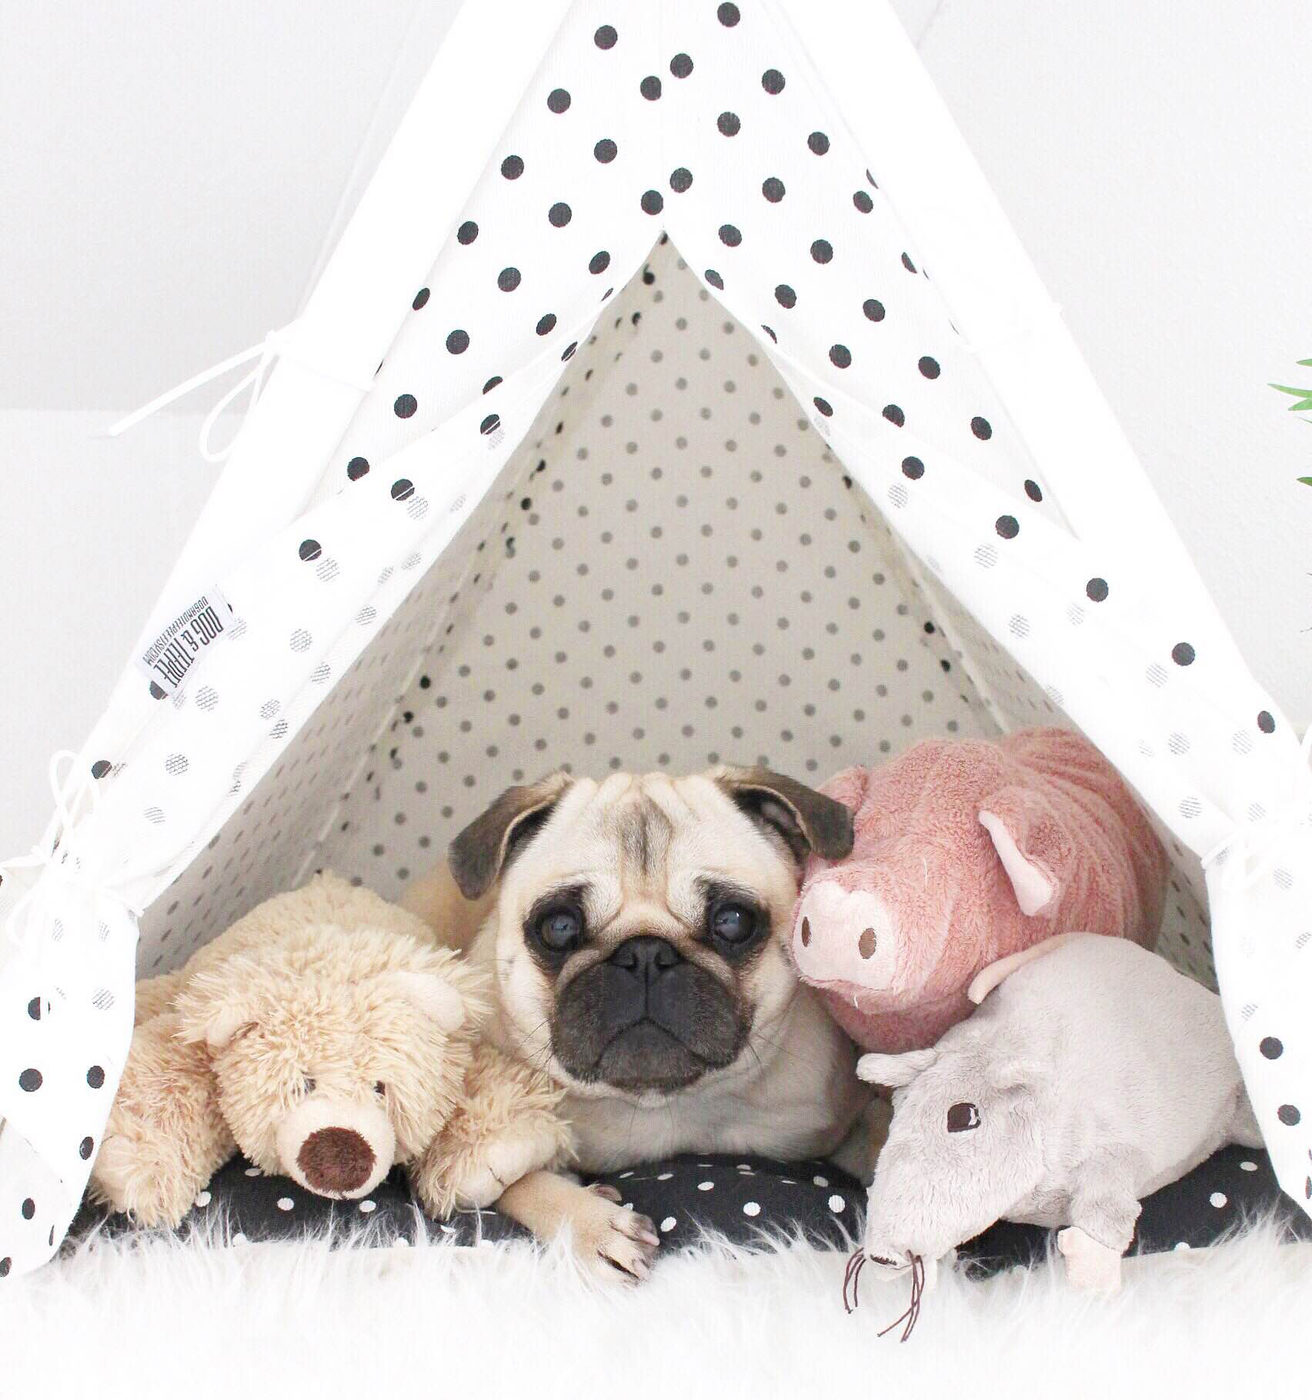 DogAndTeepee - more than just dog bed.